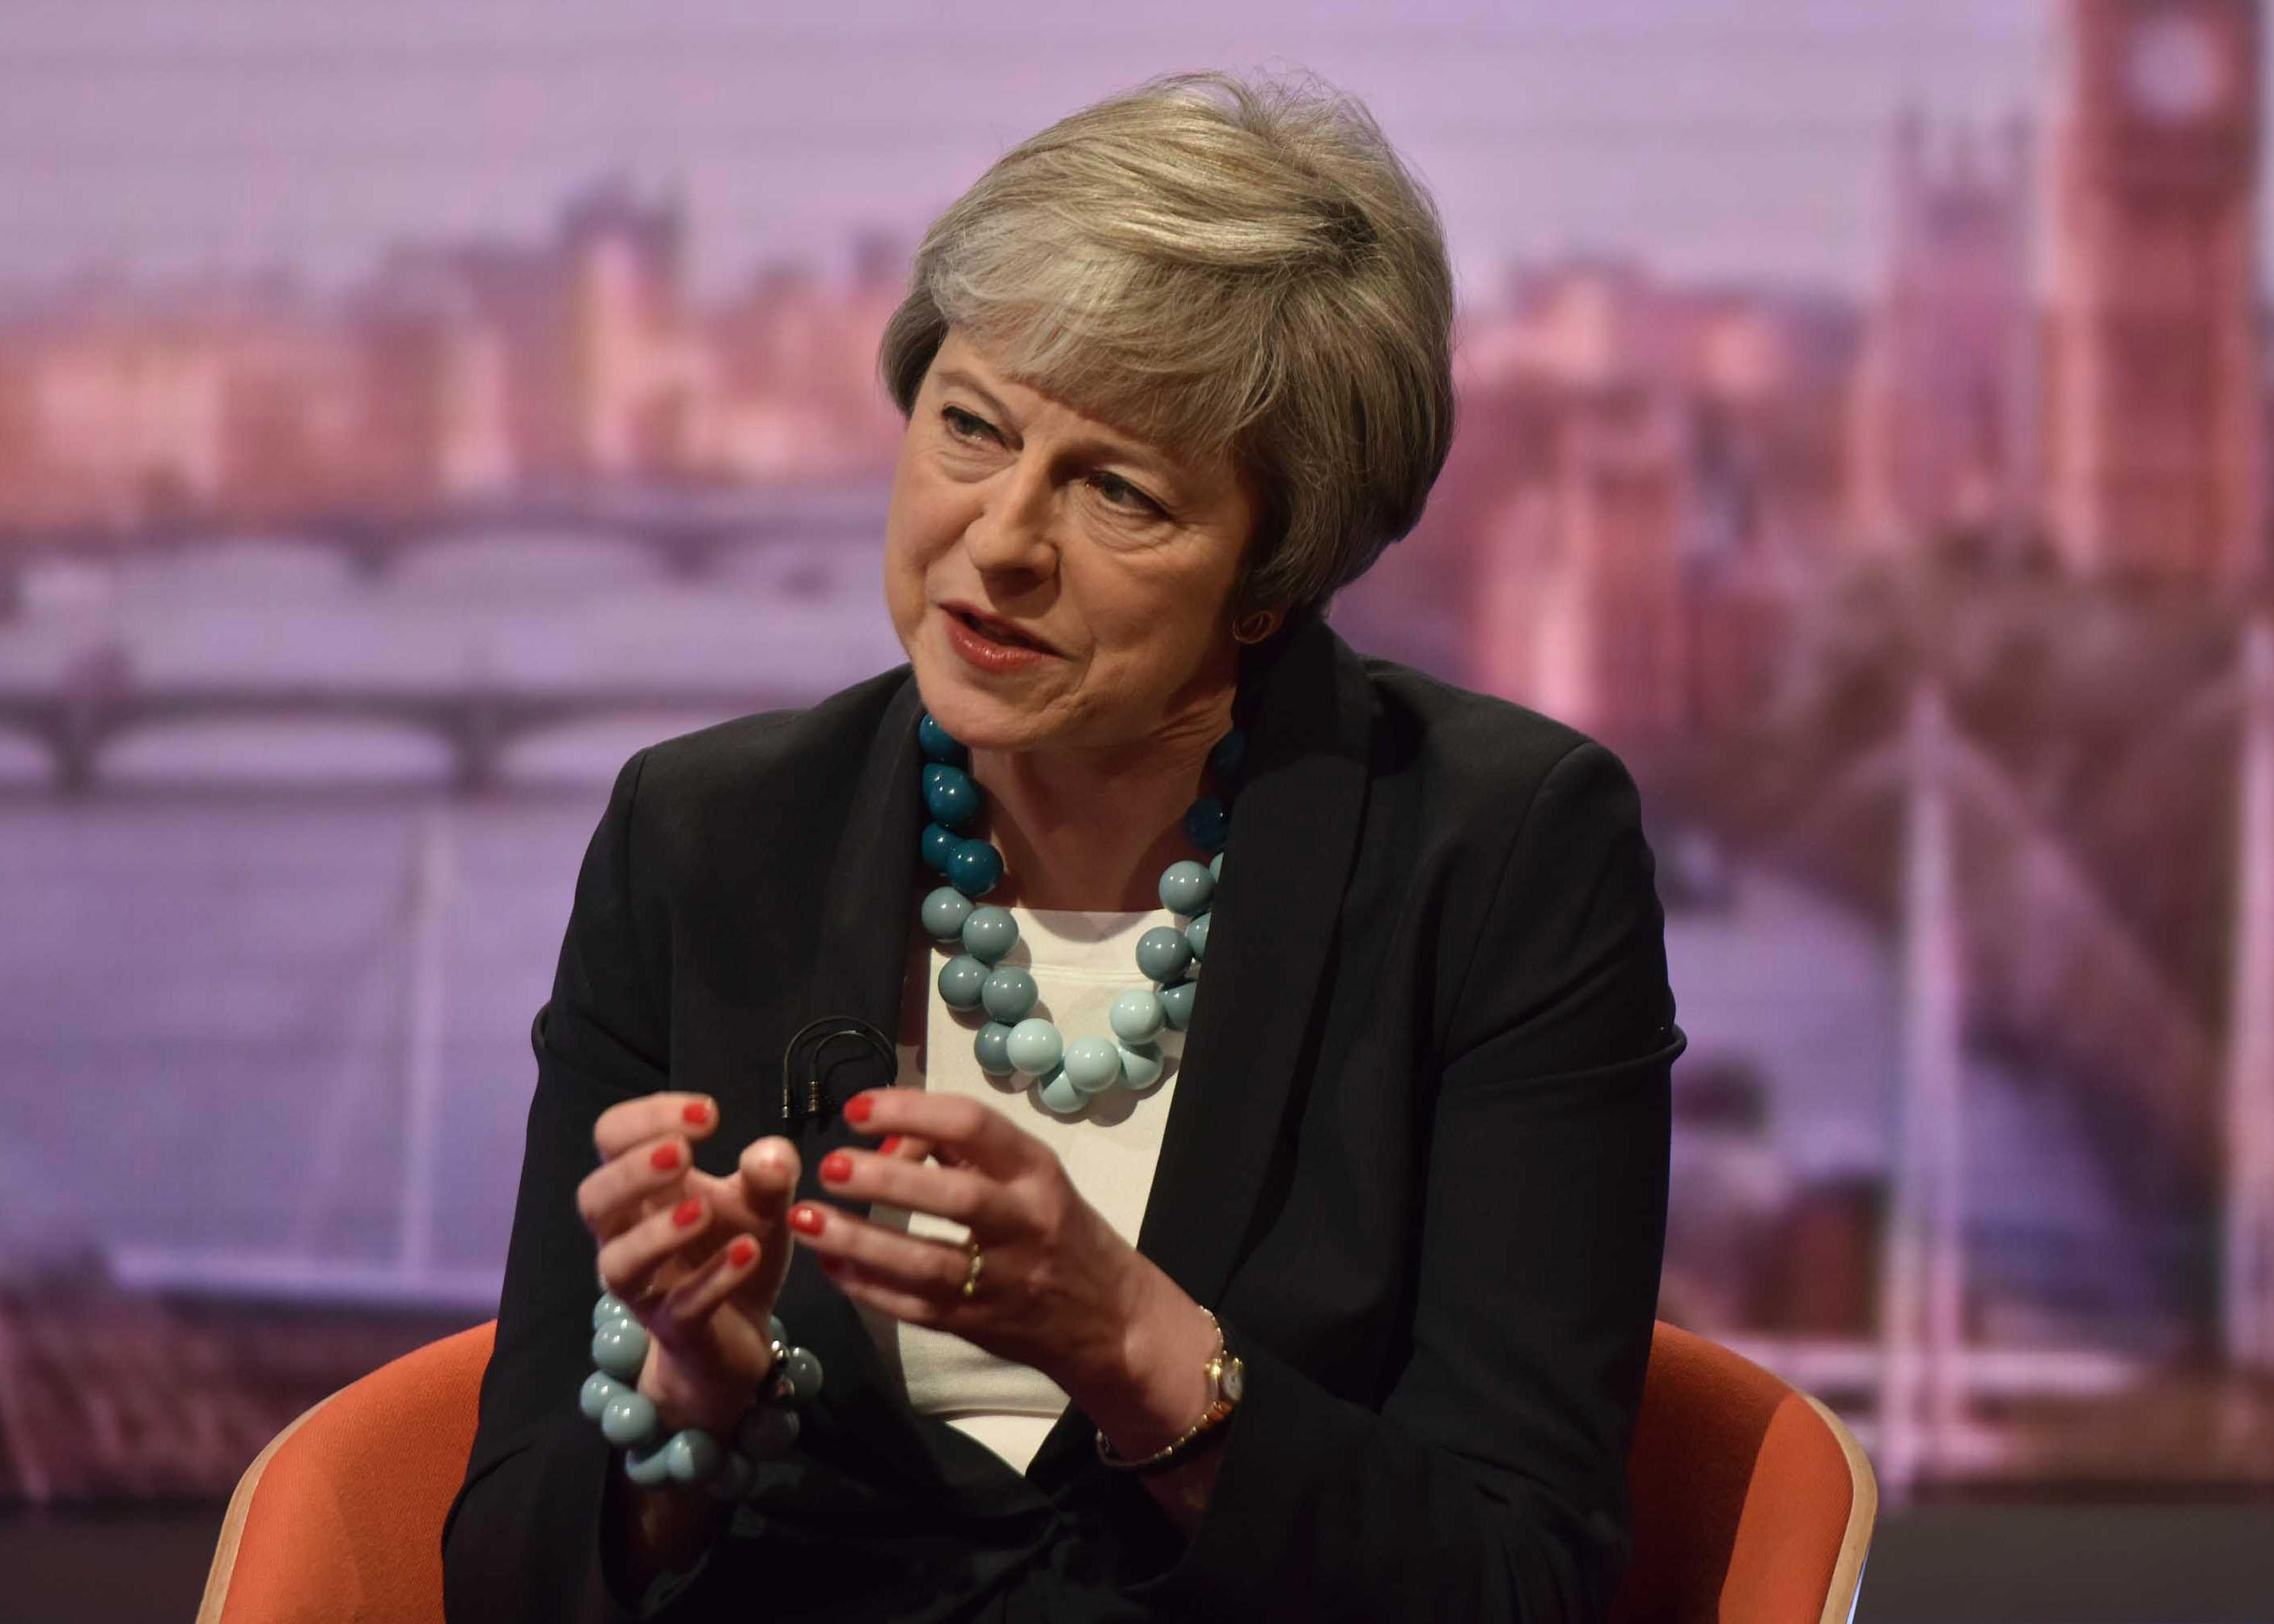 Theresa May says she WILL get her Brexit deal passed – even if she has to force MPs to vote for it over and over again